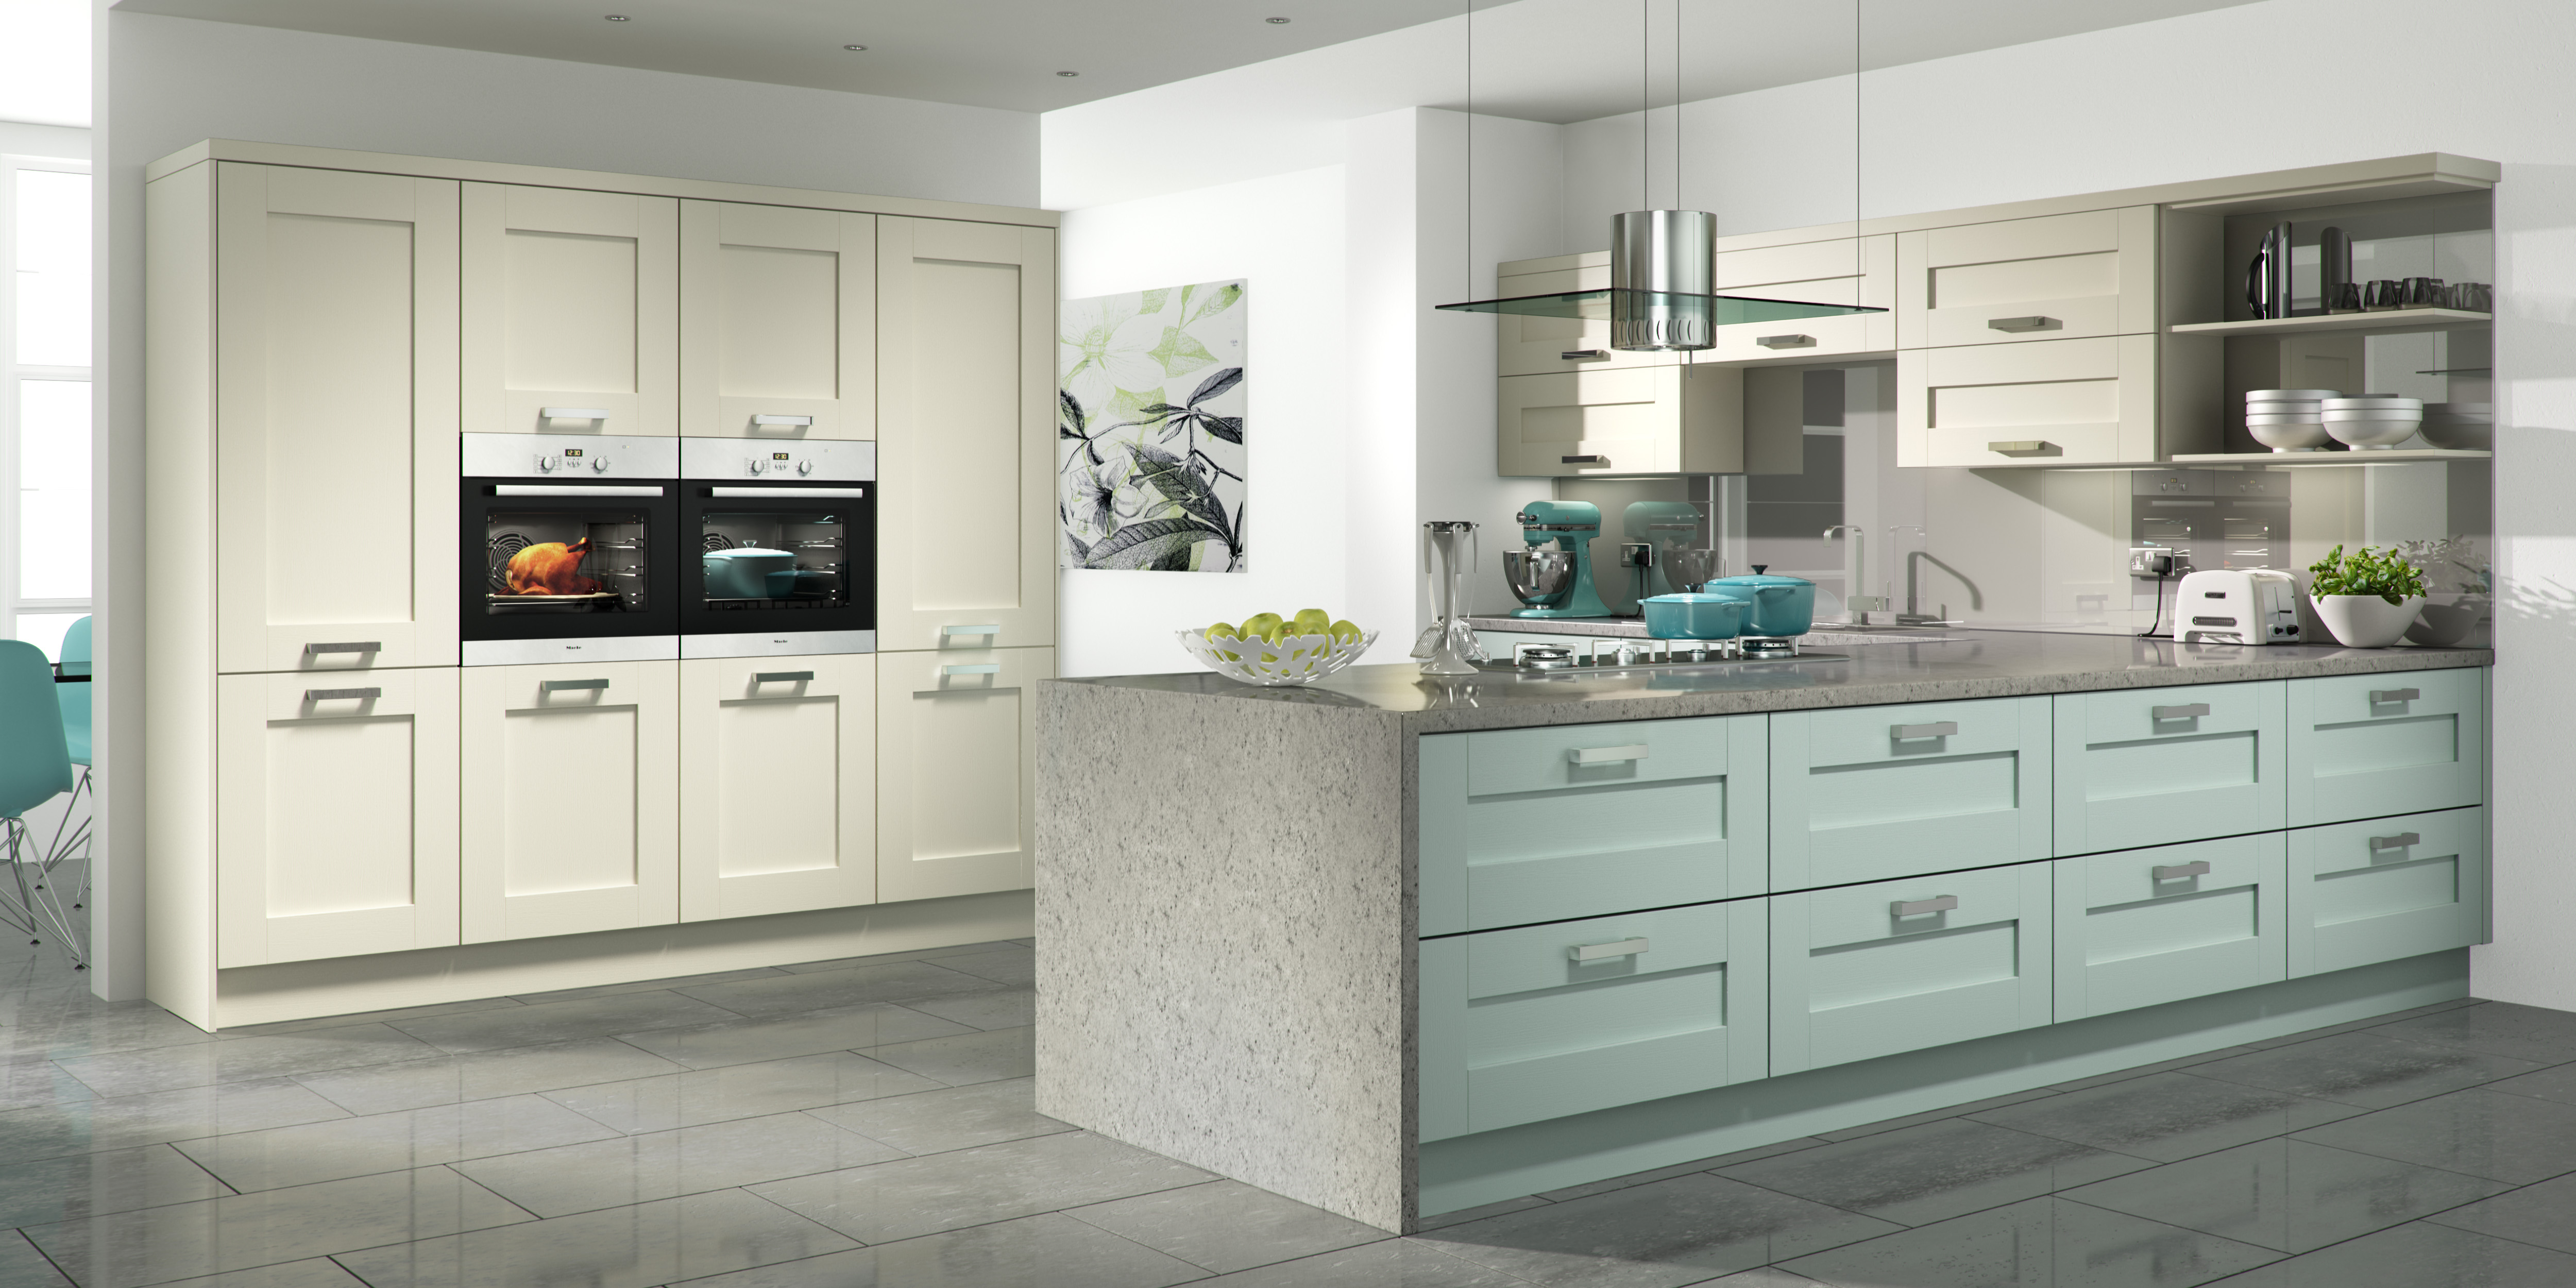 Painted range brookwood kitchens for Brookwood kitchen cabinets